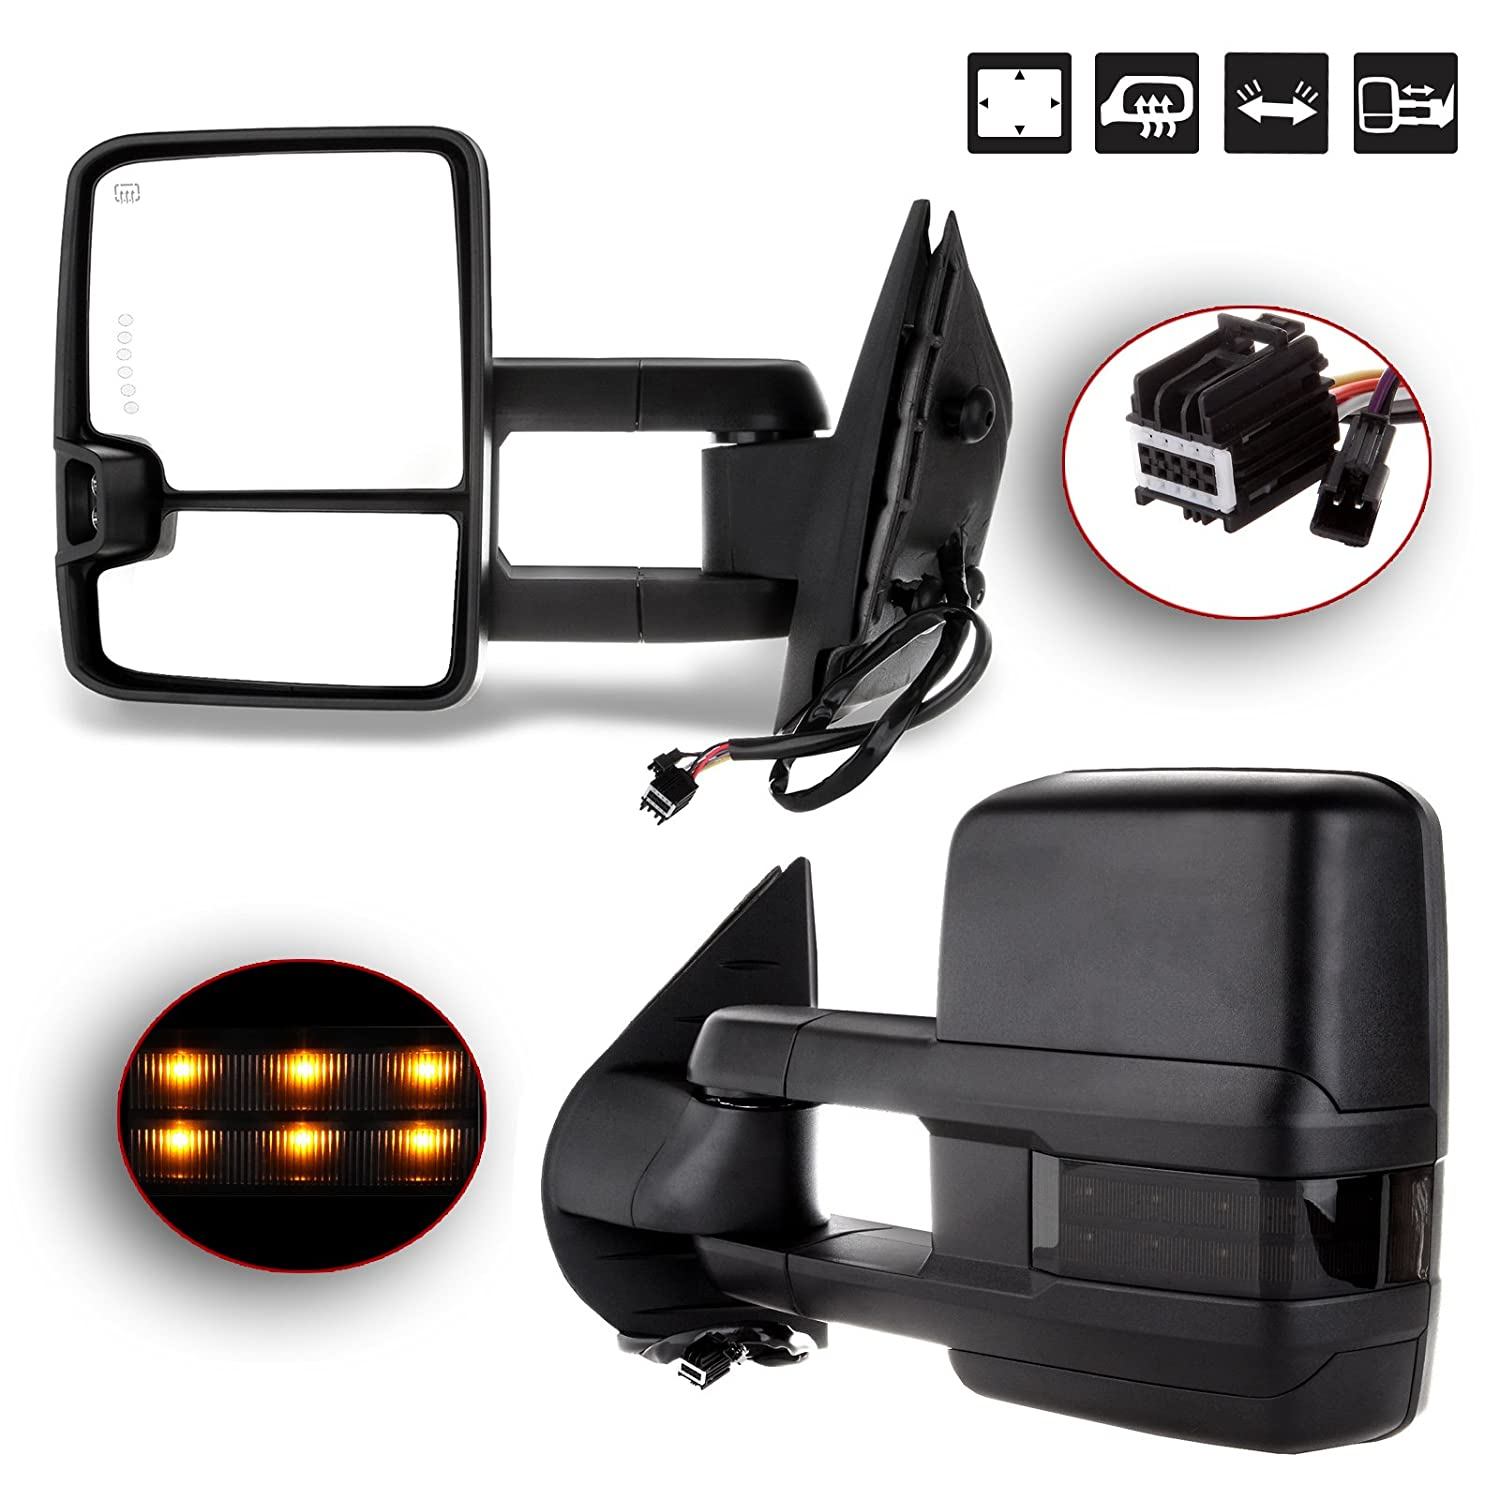 Towing Mirrors Automotive Exterior Mirrors Chevy GMC 2007-2014 Silverado/Sierra Pair Rear View Mirrors Power Control Heated Turn Signal Backup Light Manual Telescoping Folding SCITOO 050924-5206-1705321